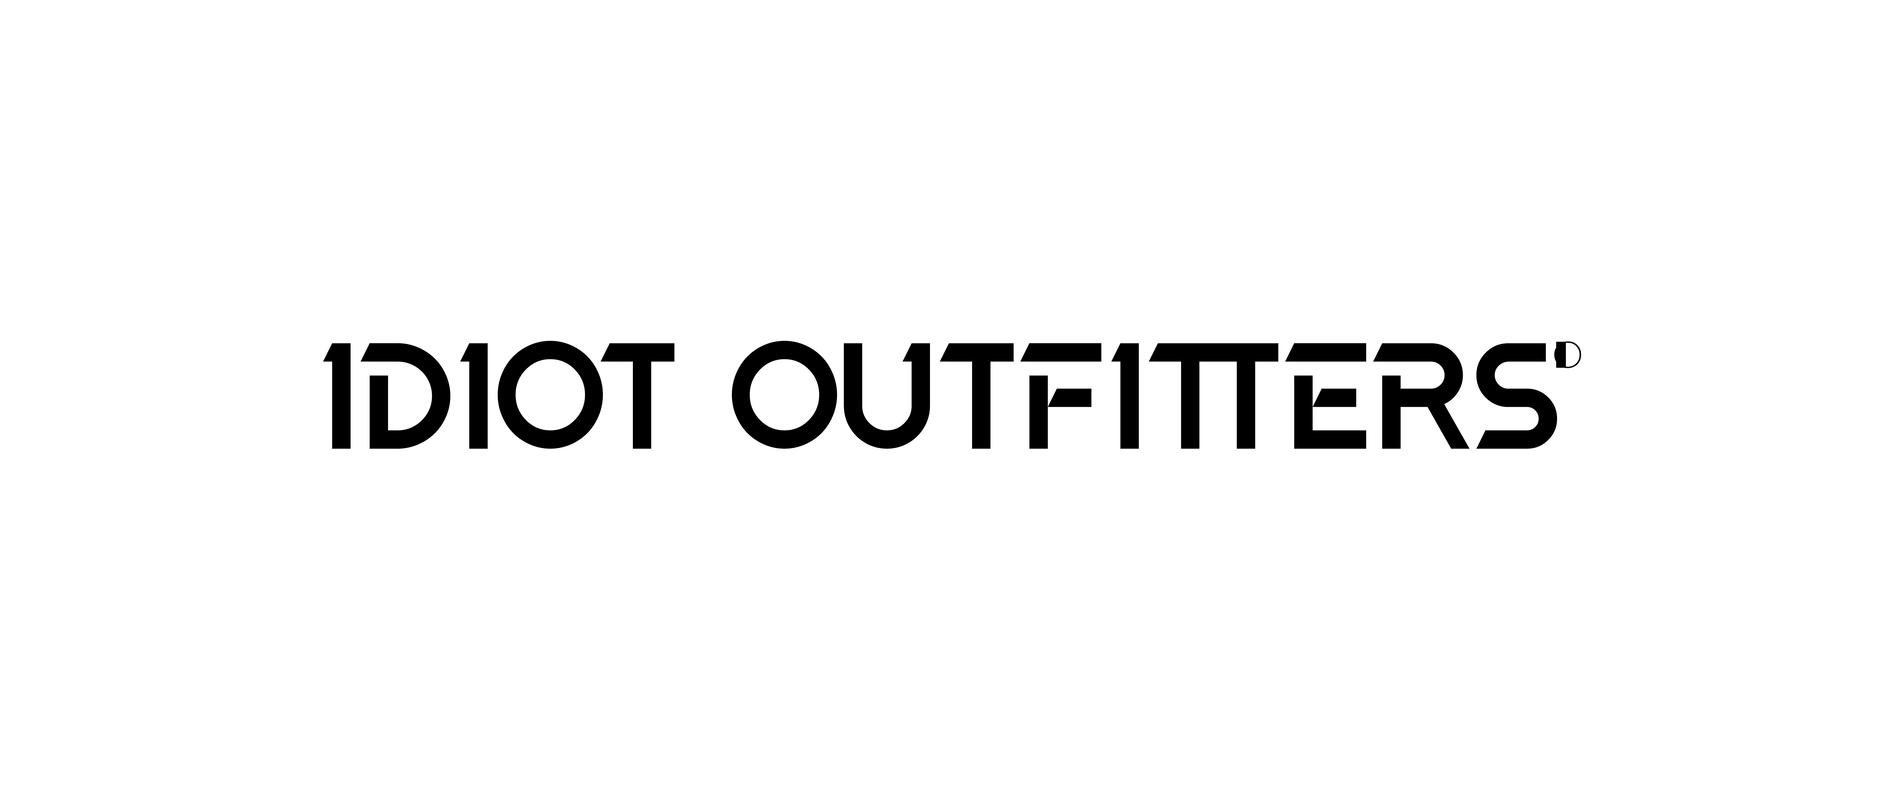 IDIOT OUTFITTERS